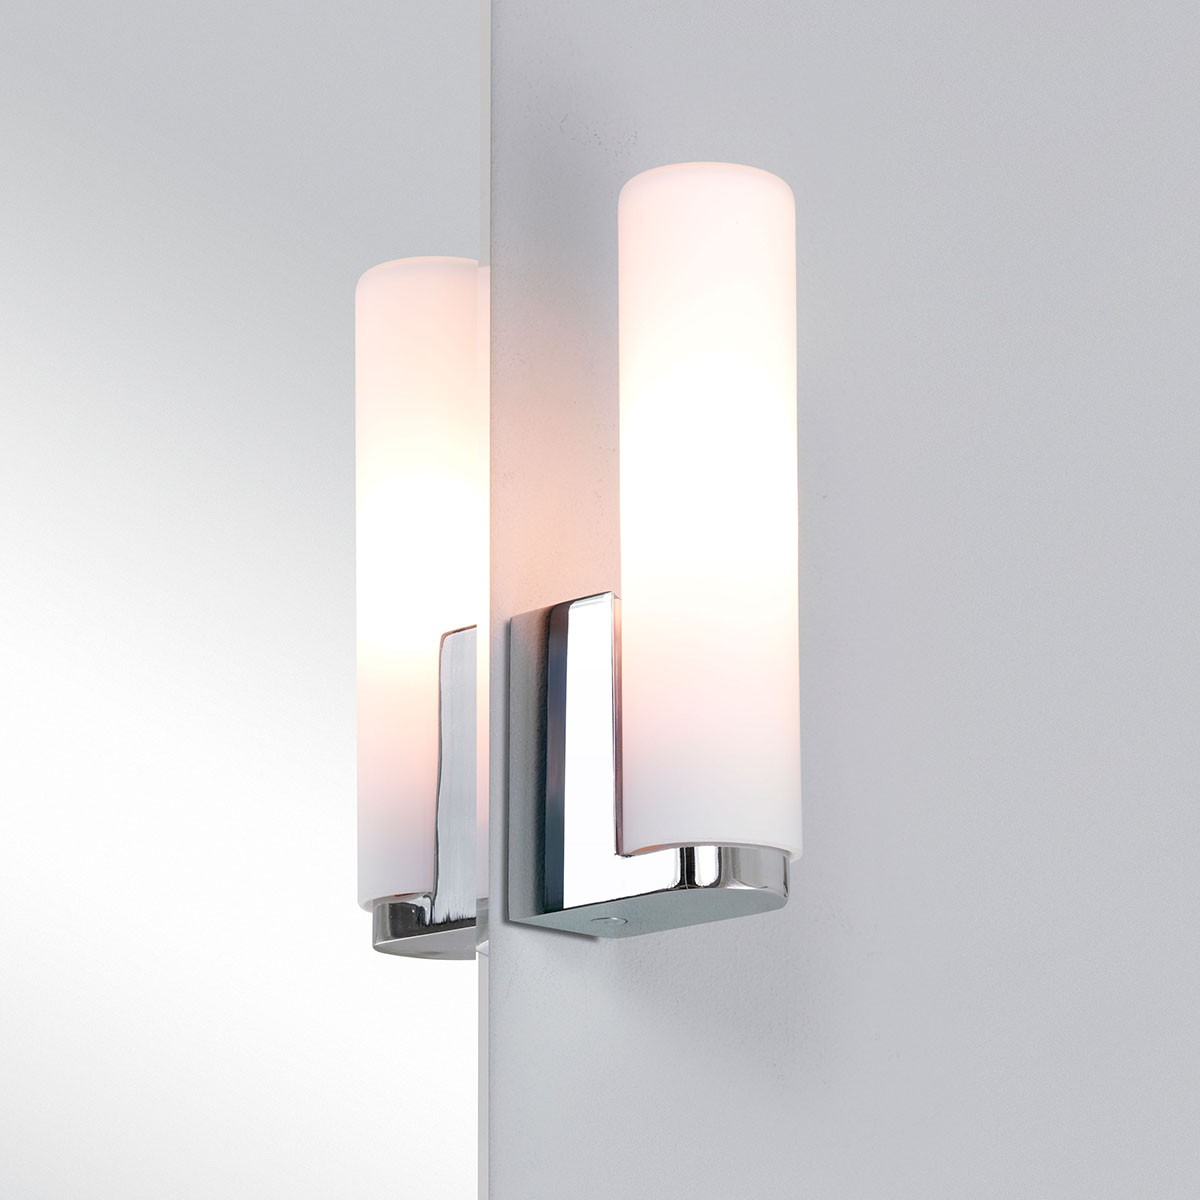 Wall Lights In Chrome : Astro Tulsa Polished Chrome Bathroom Wall Light at UK Electrical Supplies.